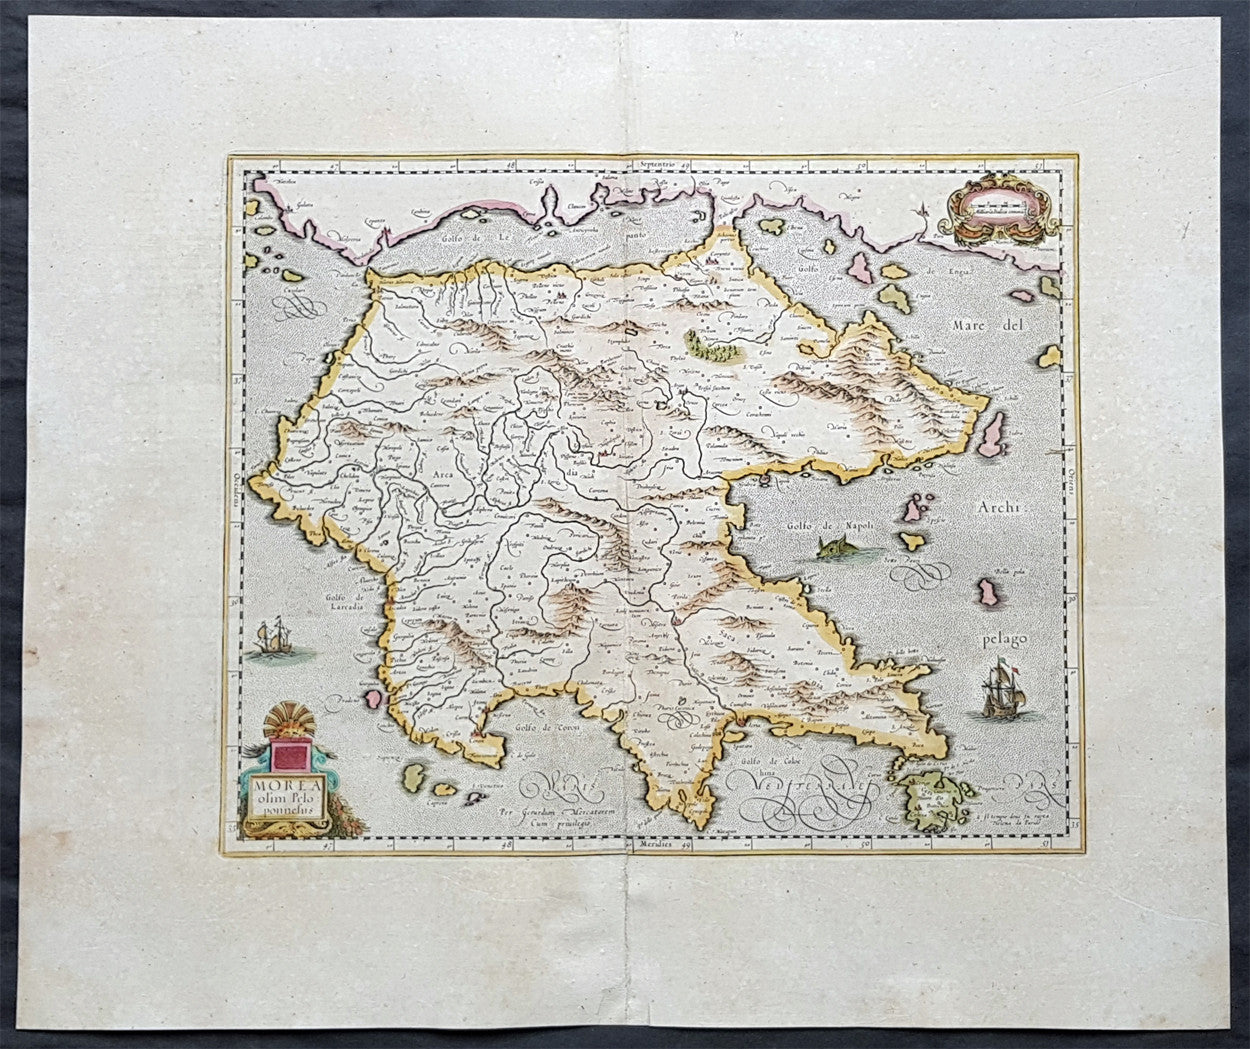 1639 Hondius Mercator Antique Map of Morea The Greek Peloponnese